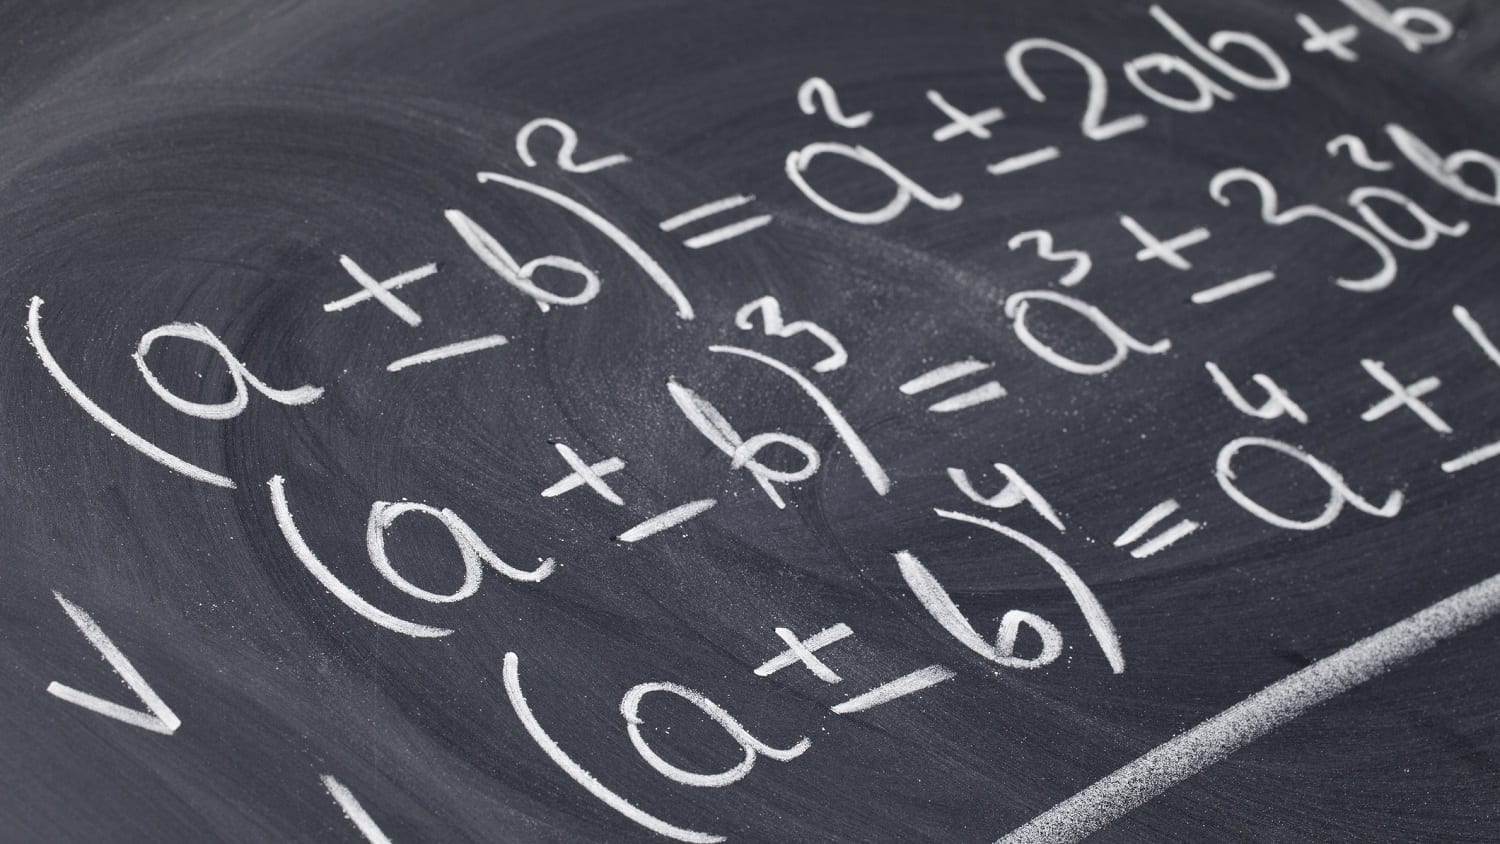 Algebraic equations on a blackboard: Photo 20838970 © Marek Uliasz | Dreamstime.com